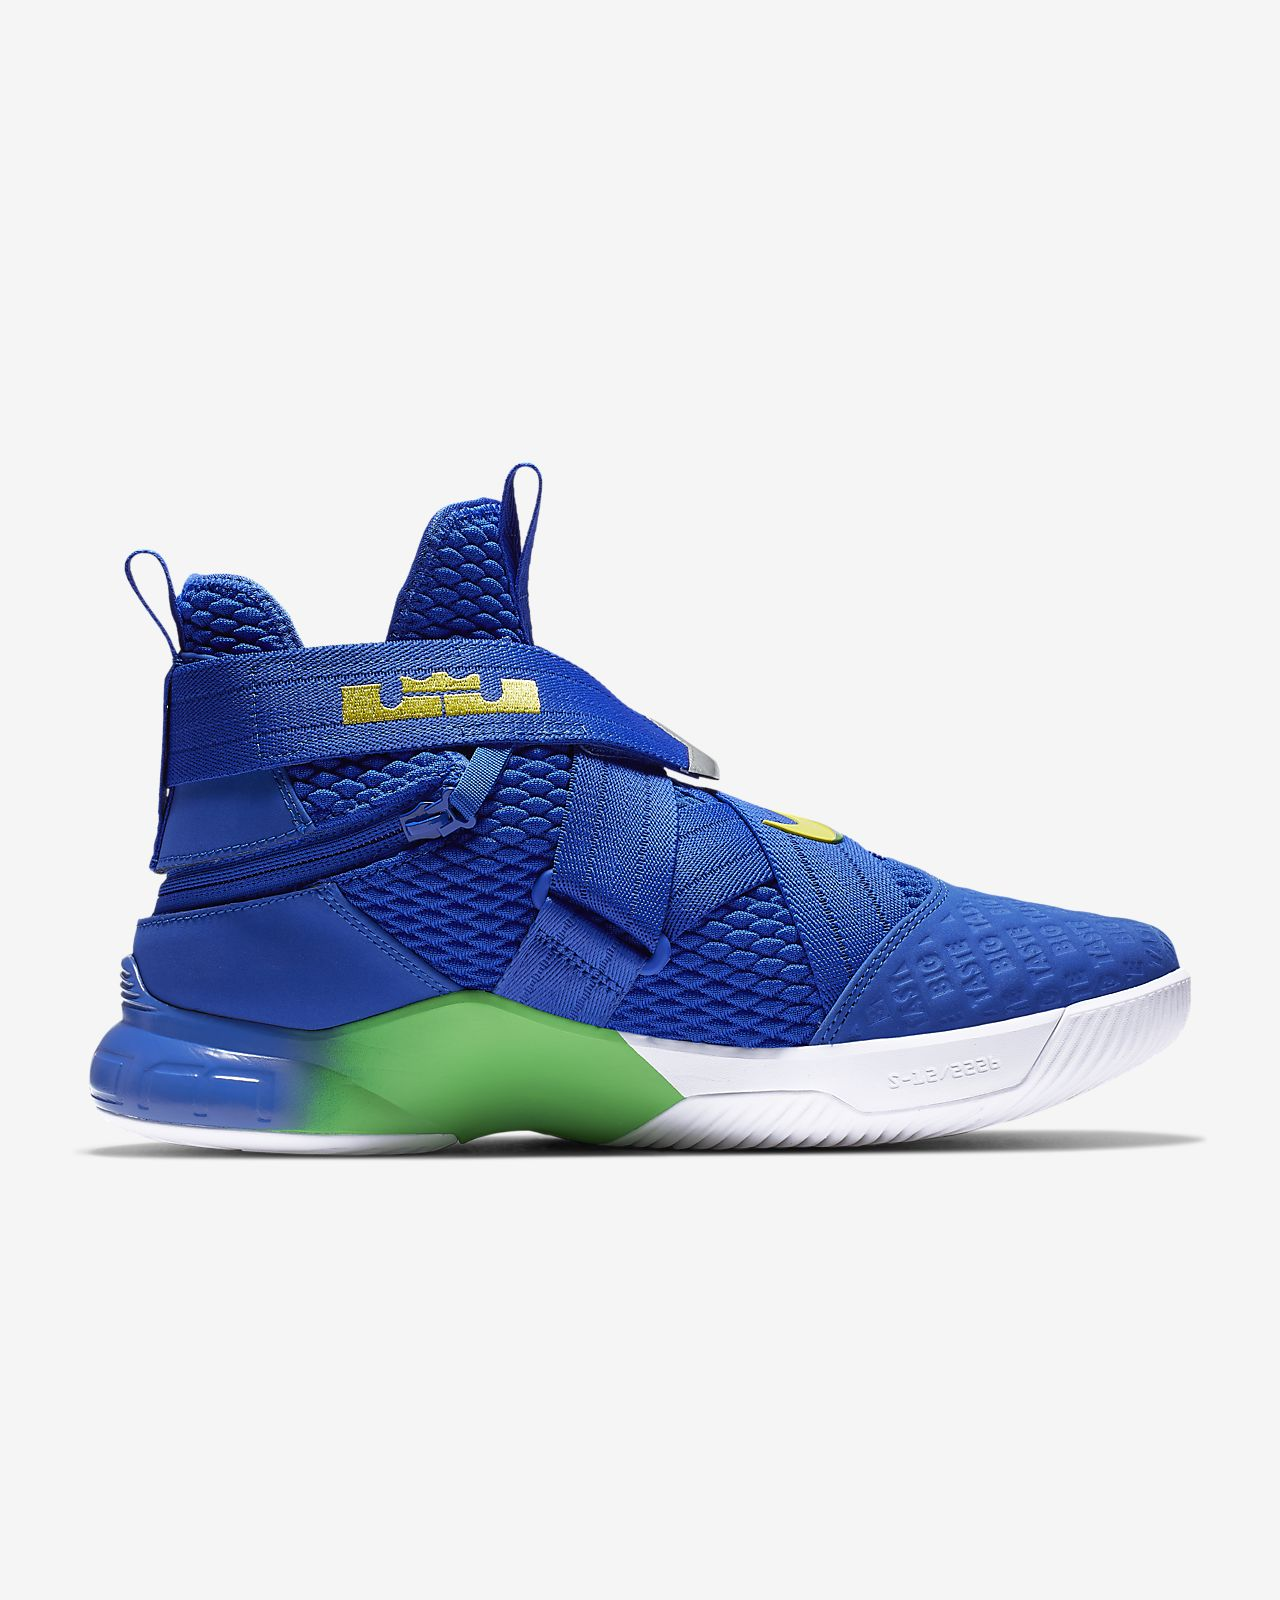 hot sale online 6139c a8d2e LeBron Soldier 12 FlyEase Men's Basketball Shoe